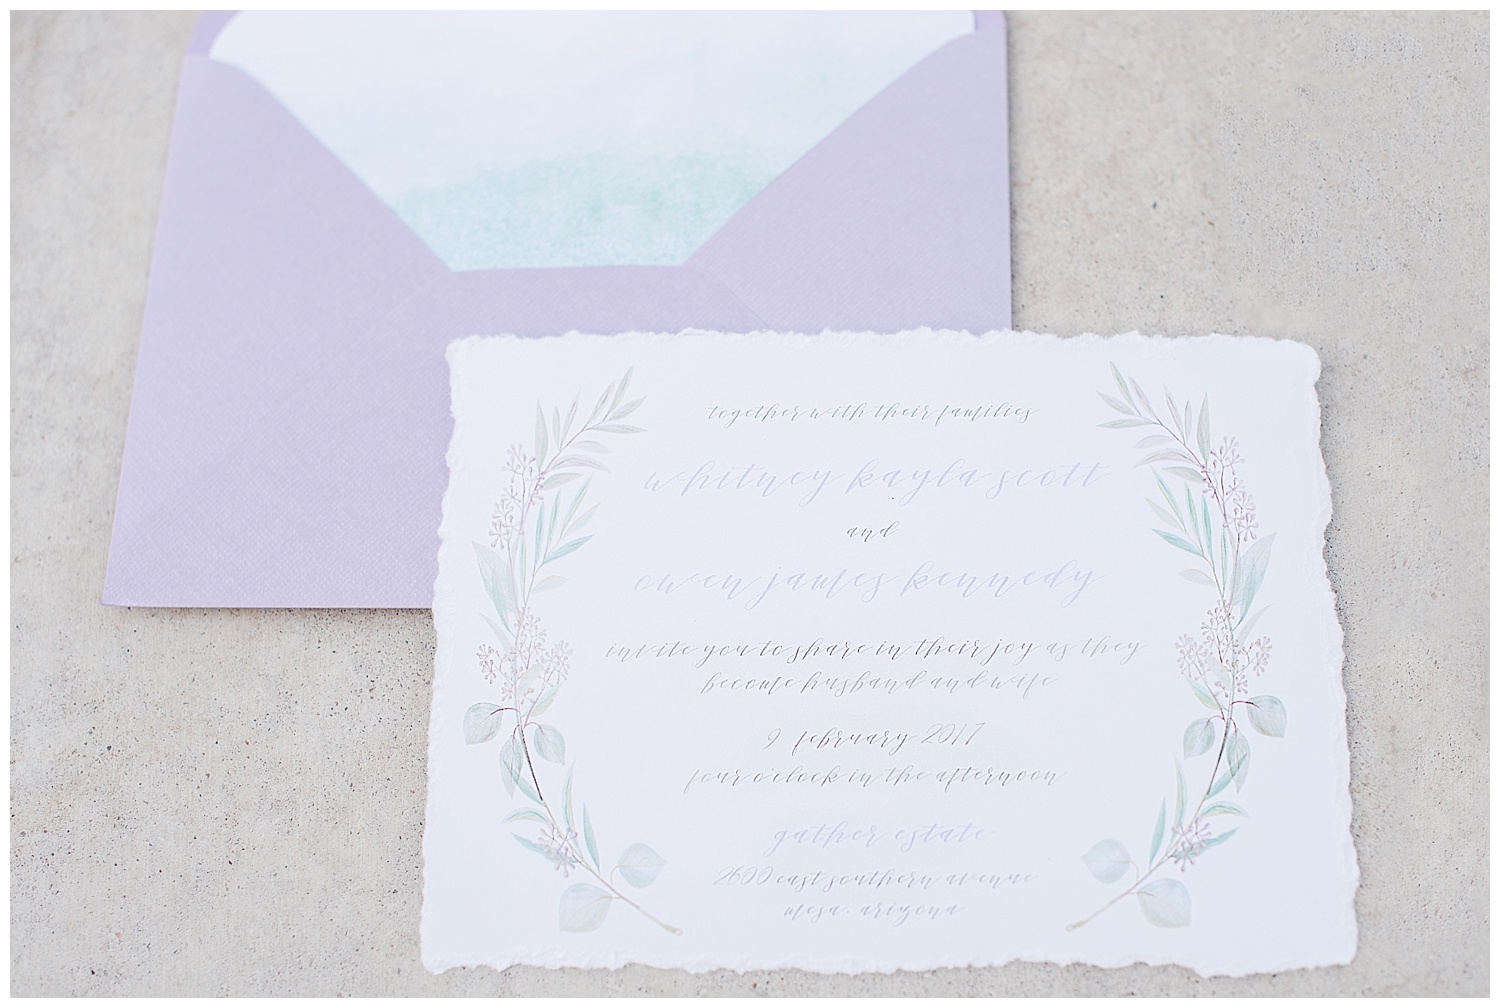 Romantic wedding invitation suite by Nora Belle Designs, photographed at Gather Estate in Mesa, Arizona.